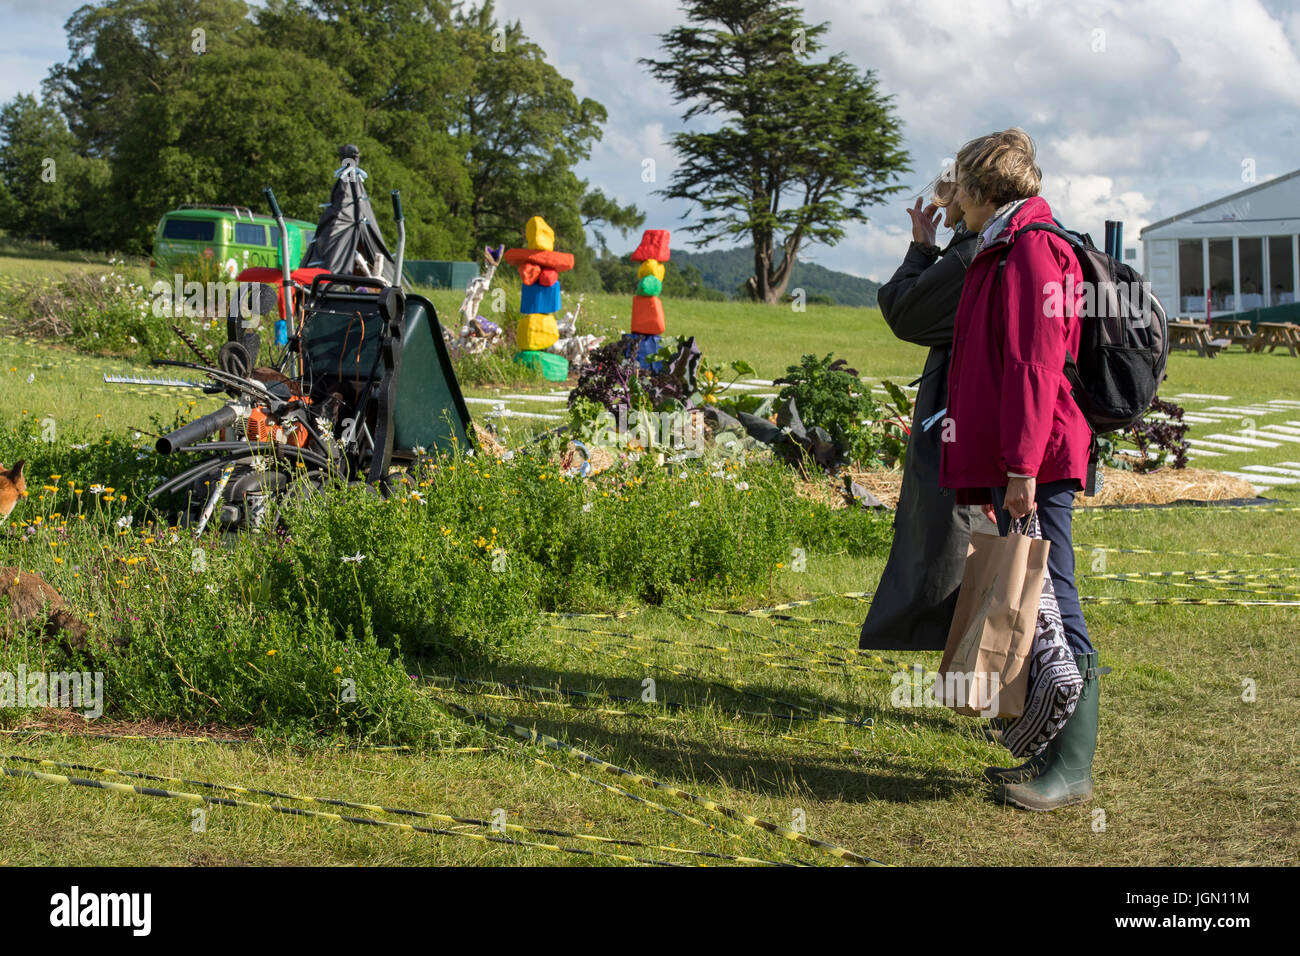 Two people viewing theatrical, symbolic & surreal Pic 'n' Mix show garden at RHS Chatsworth Flower Show, Chatsworth Stock Photo